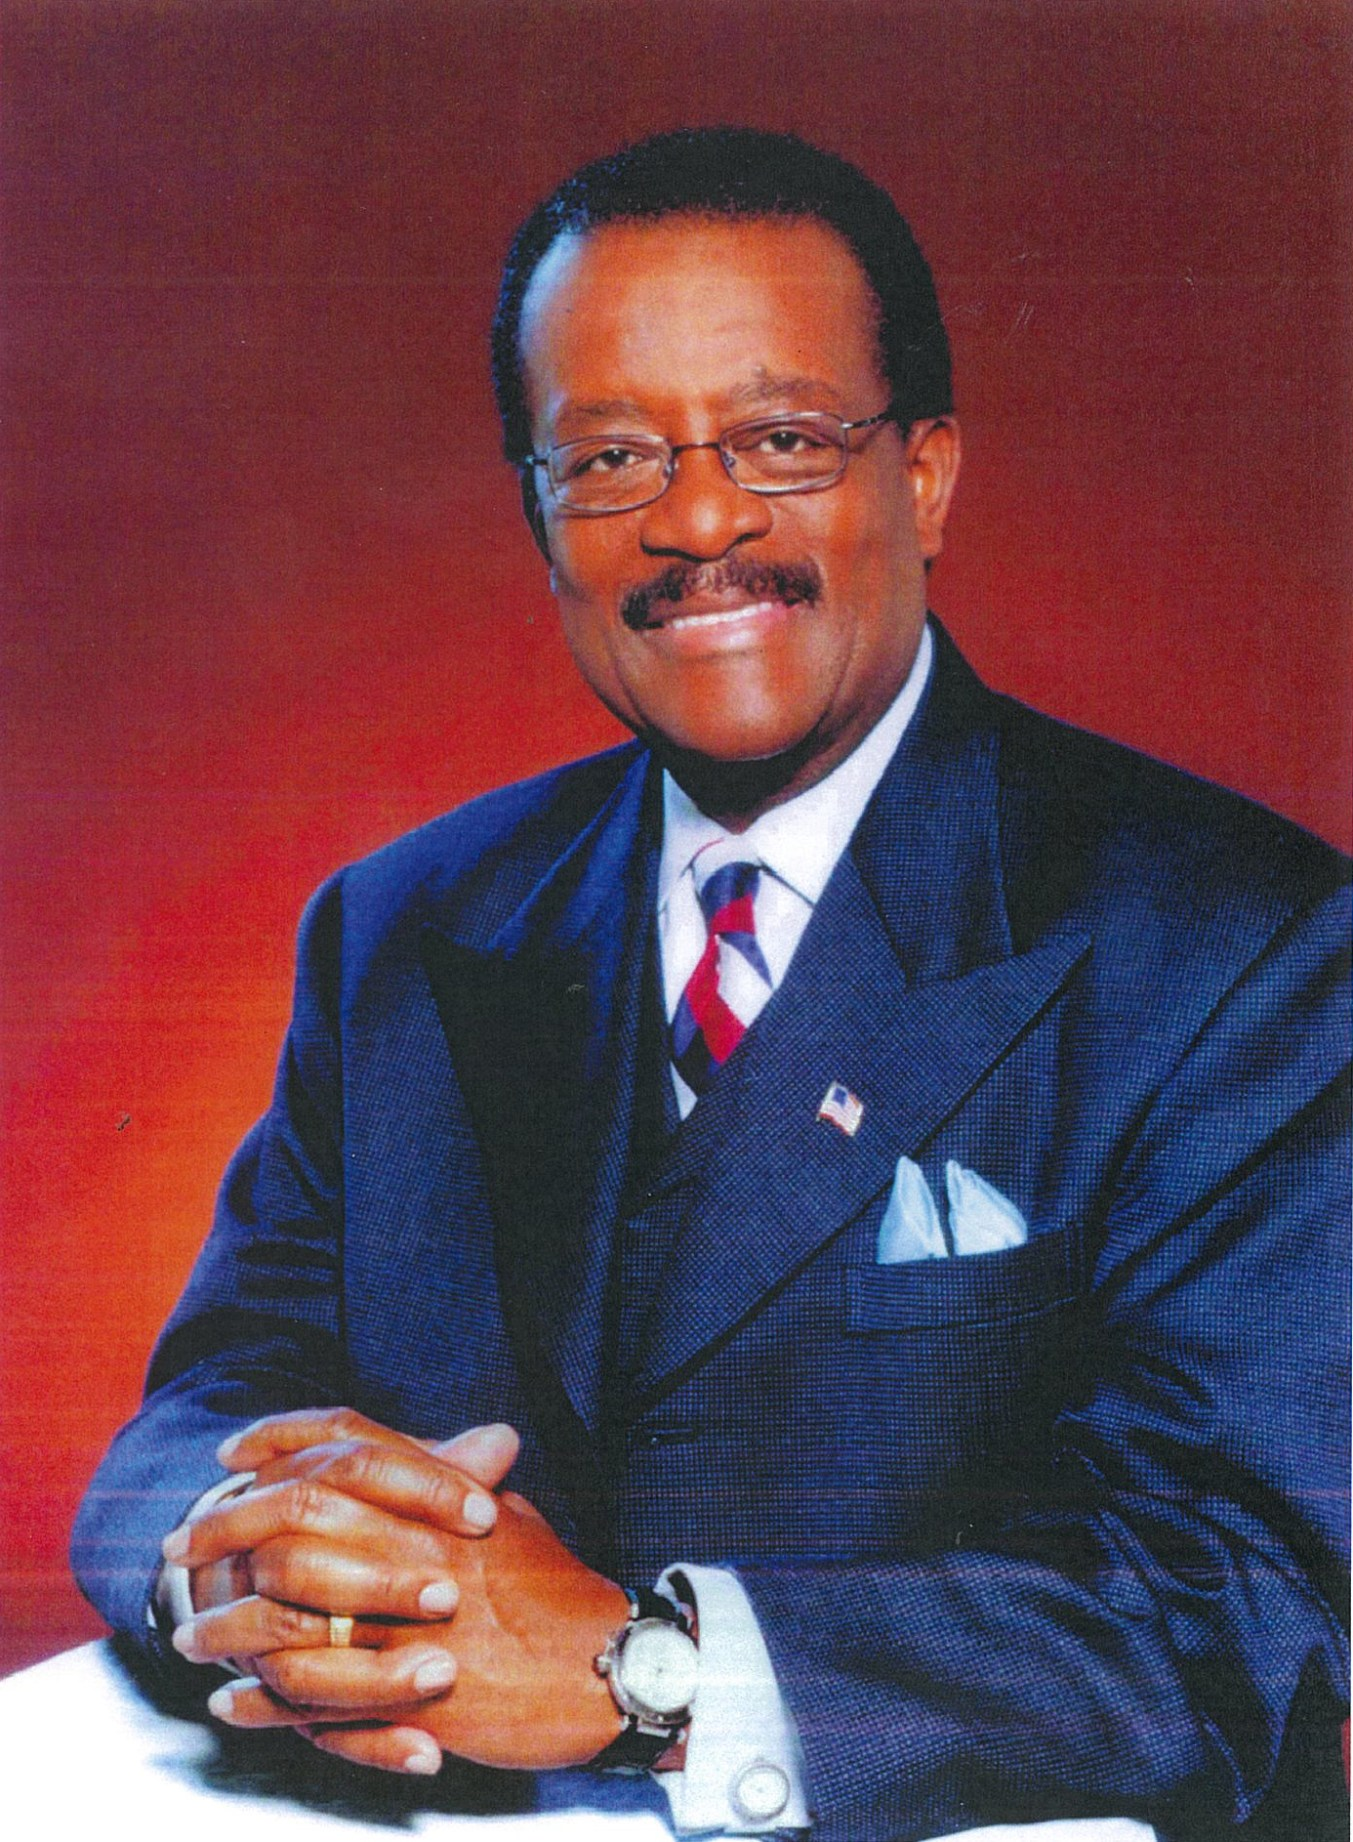 Johnnie Cochran The Definitive Profile By Charles Micheaux Micheaux Publishing